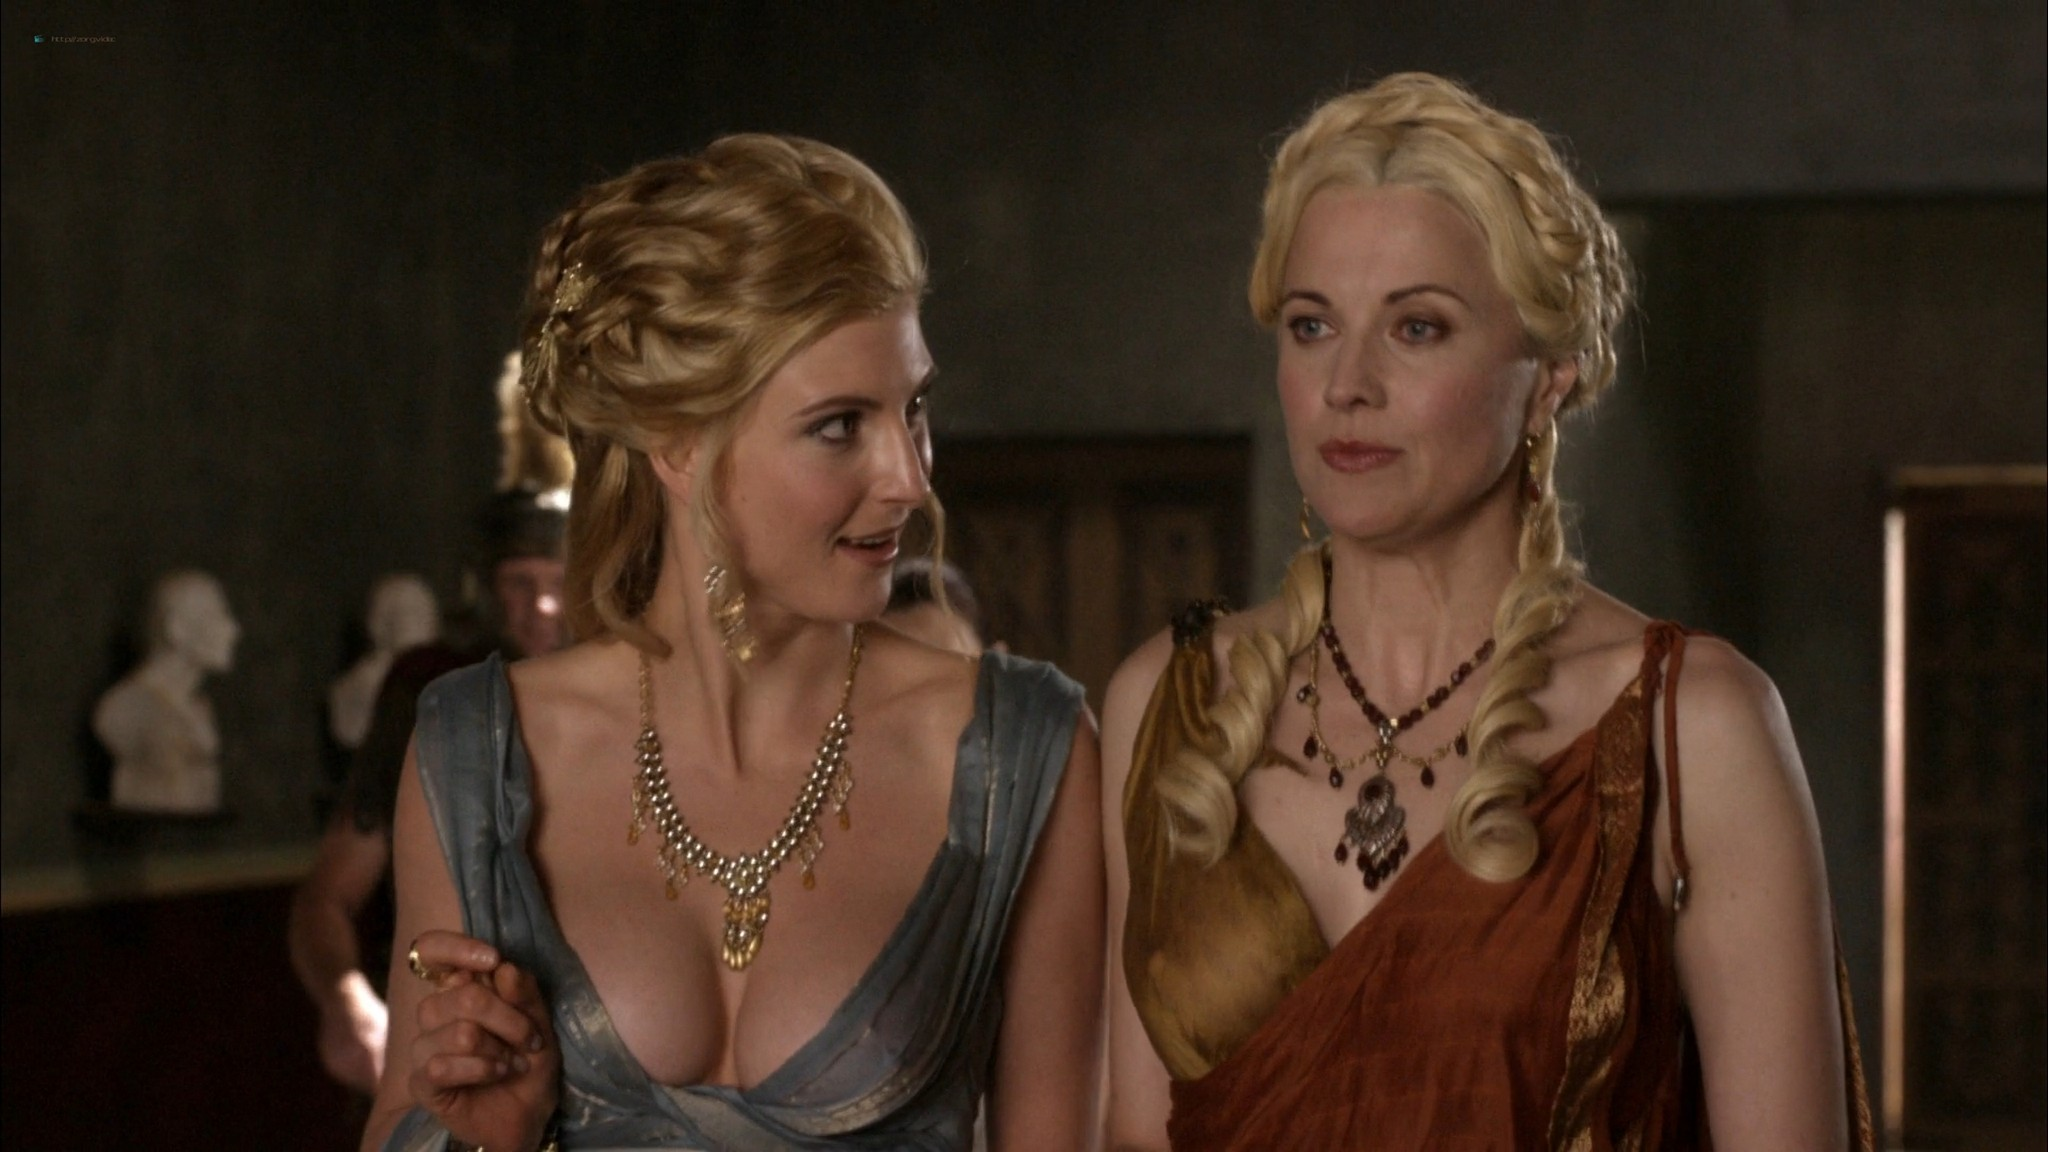 Lucy Lawless hot sex oral Lesley-Ann Brandt and others sexy - Spartacus - The Thing in the Pit (2010) s1e4-5 HD 1080p (6)